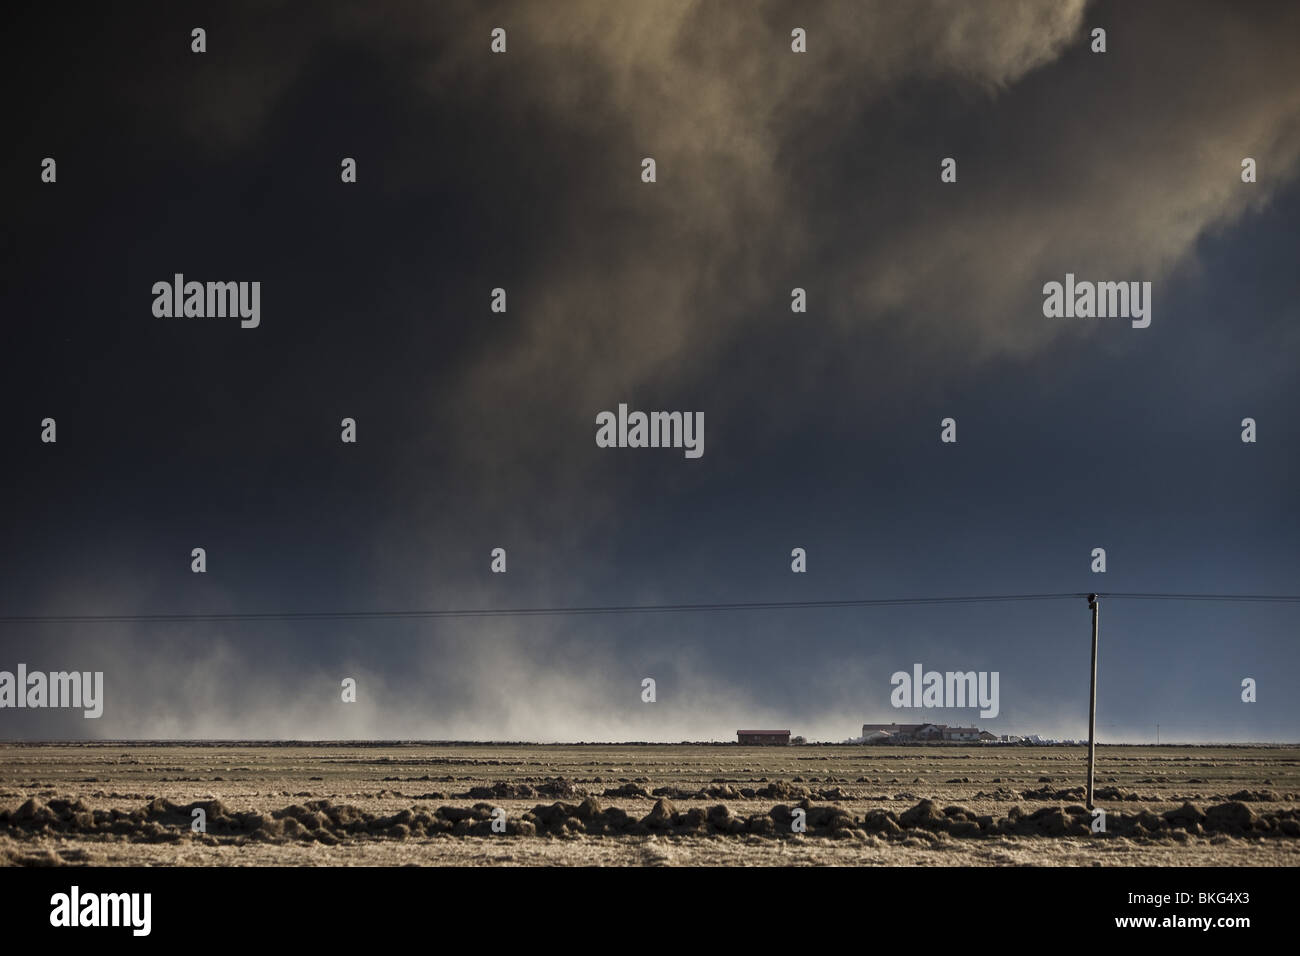 Volcanic Ash Cloud from Eyjafjallajokull Volcano Eruption, Iceland. Stock Photo